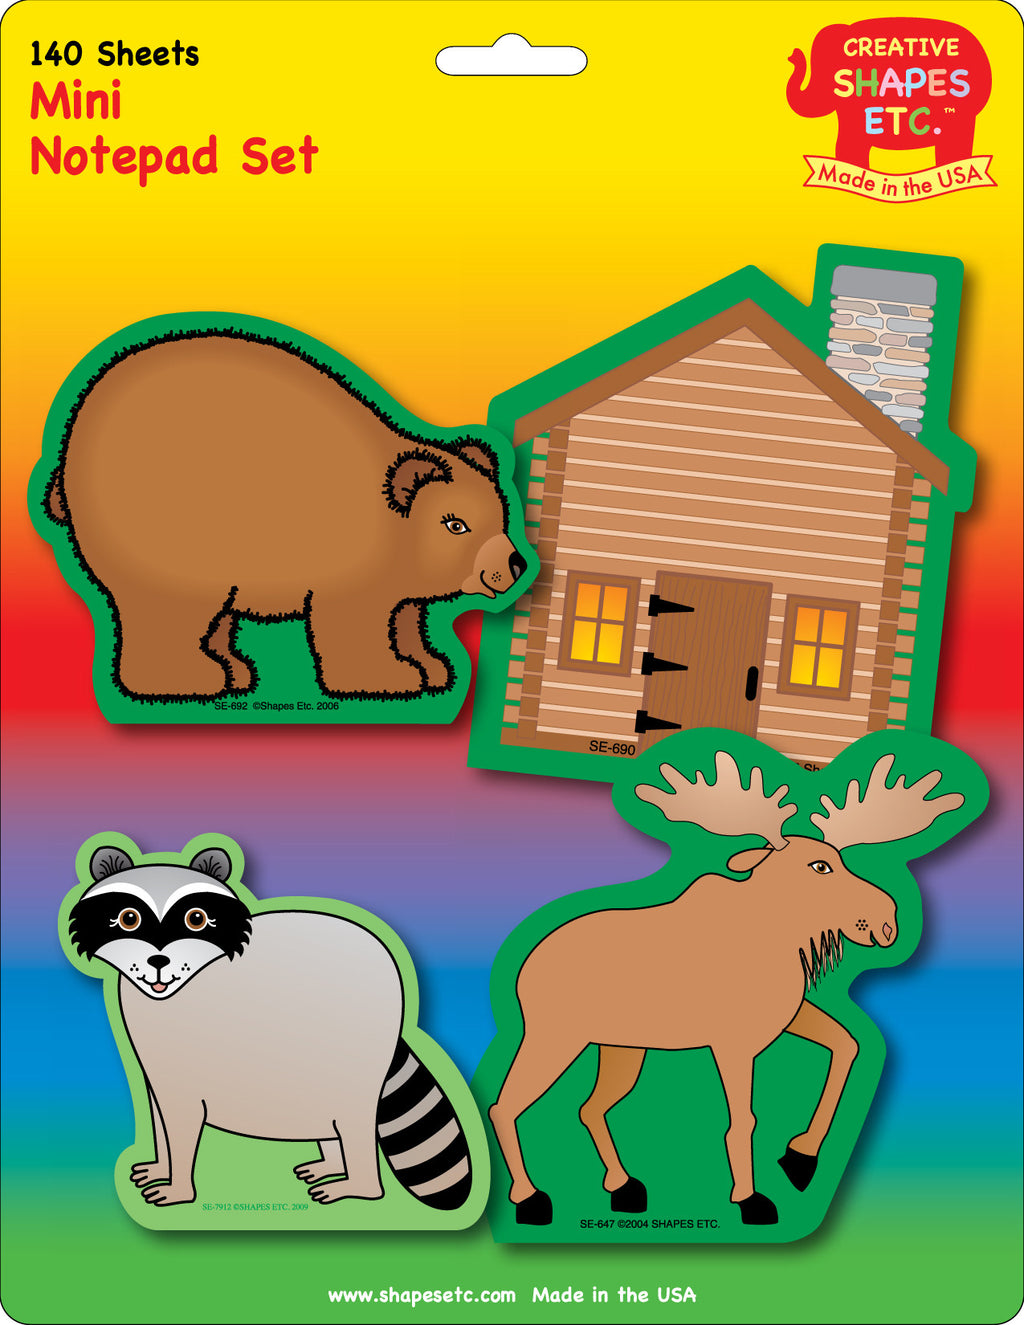 Mini Notepad Set - Great Outdoors - Creative Shapes Etc.